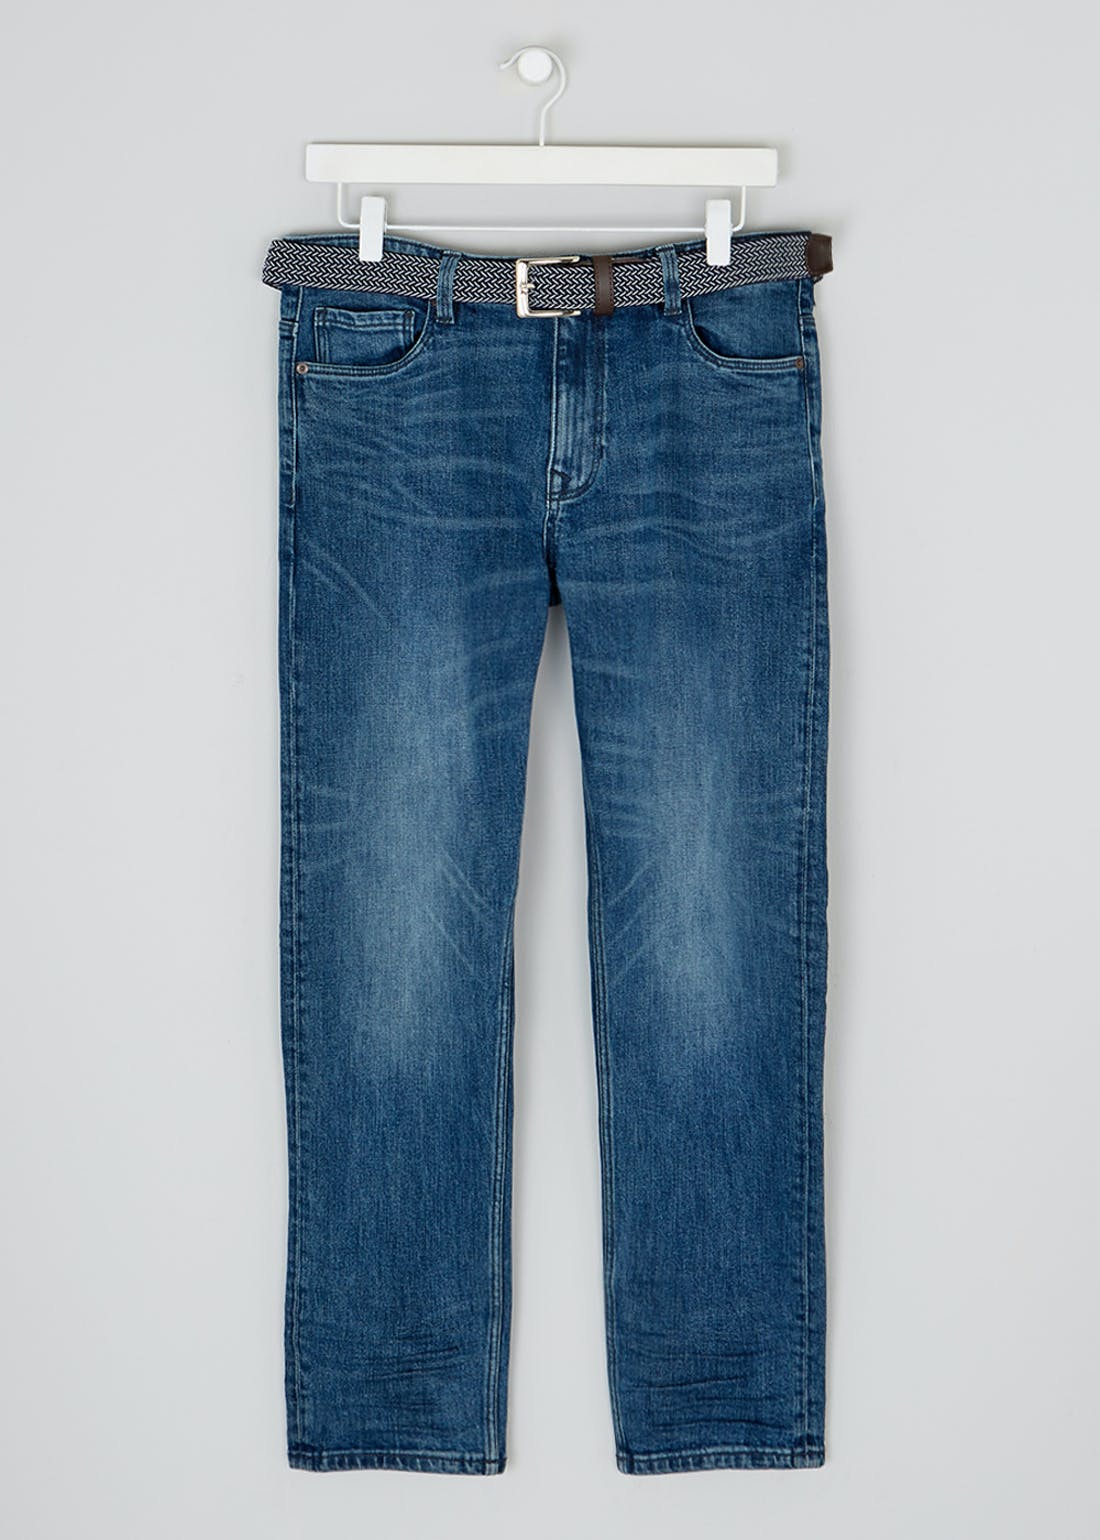 Lincoln Stretch Straight Fit Belted Jeans